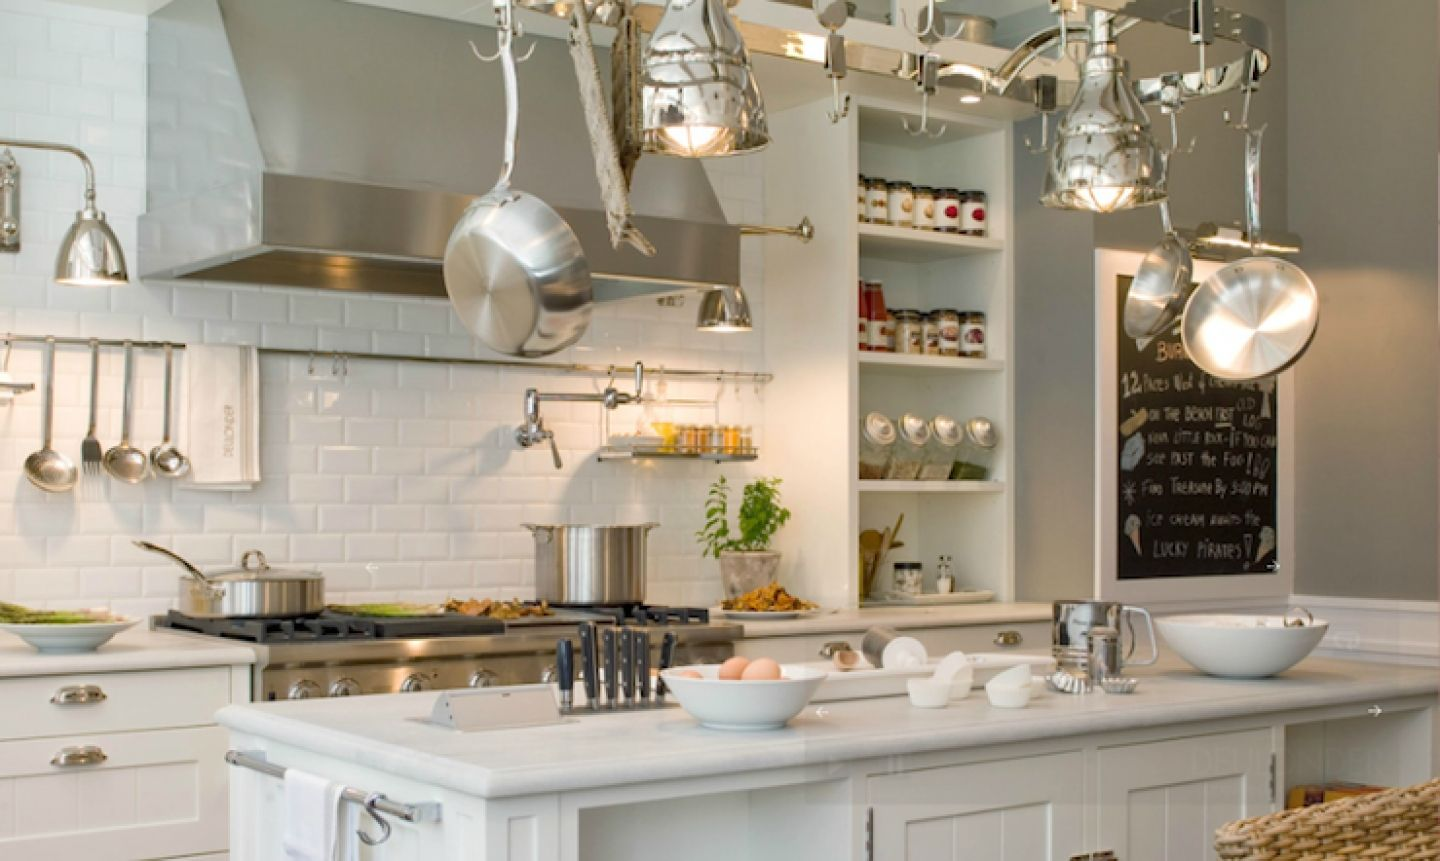 White And Grey Galley Kitchen Kitchens With White Cabinets White Subway Tiles For Back Splash